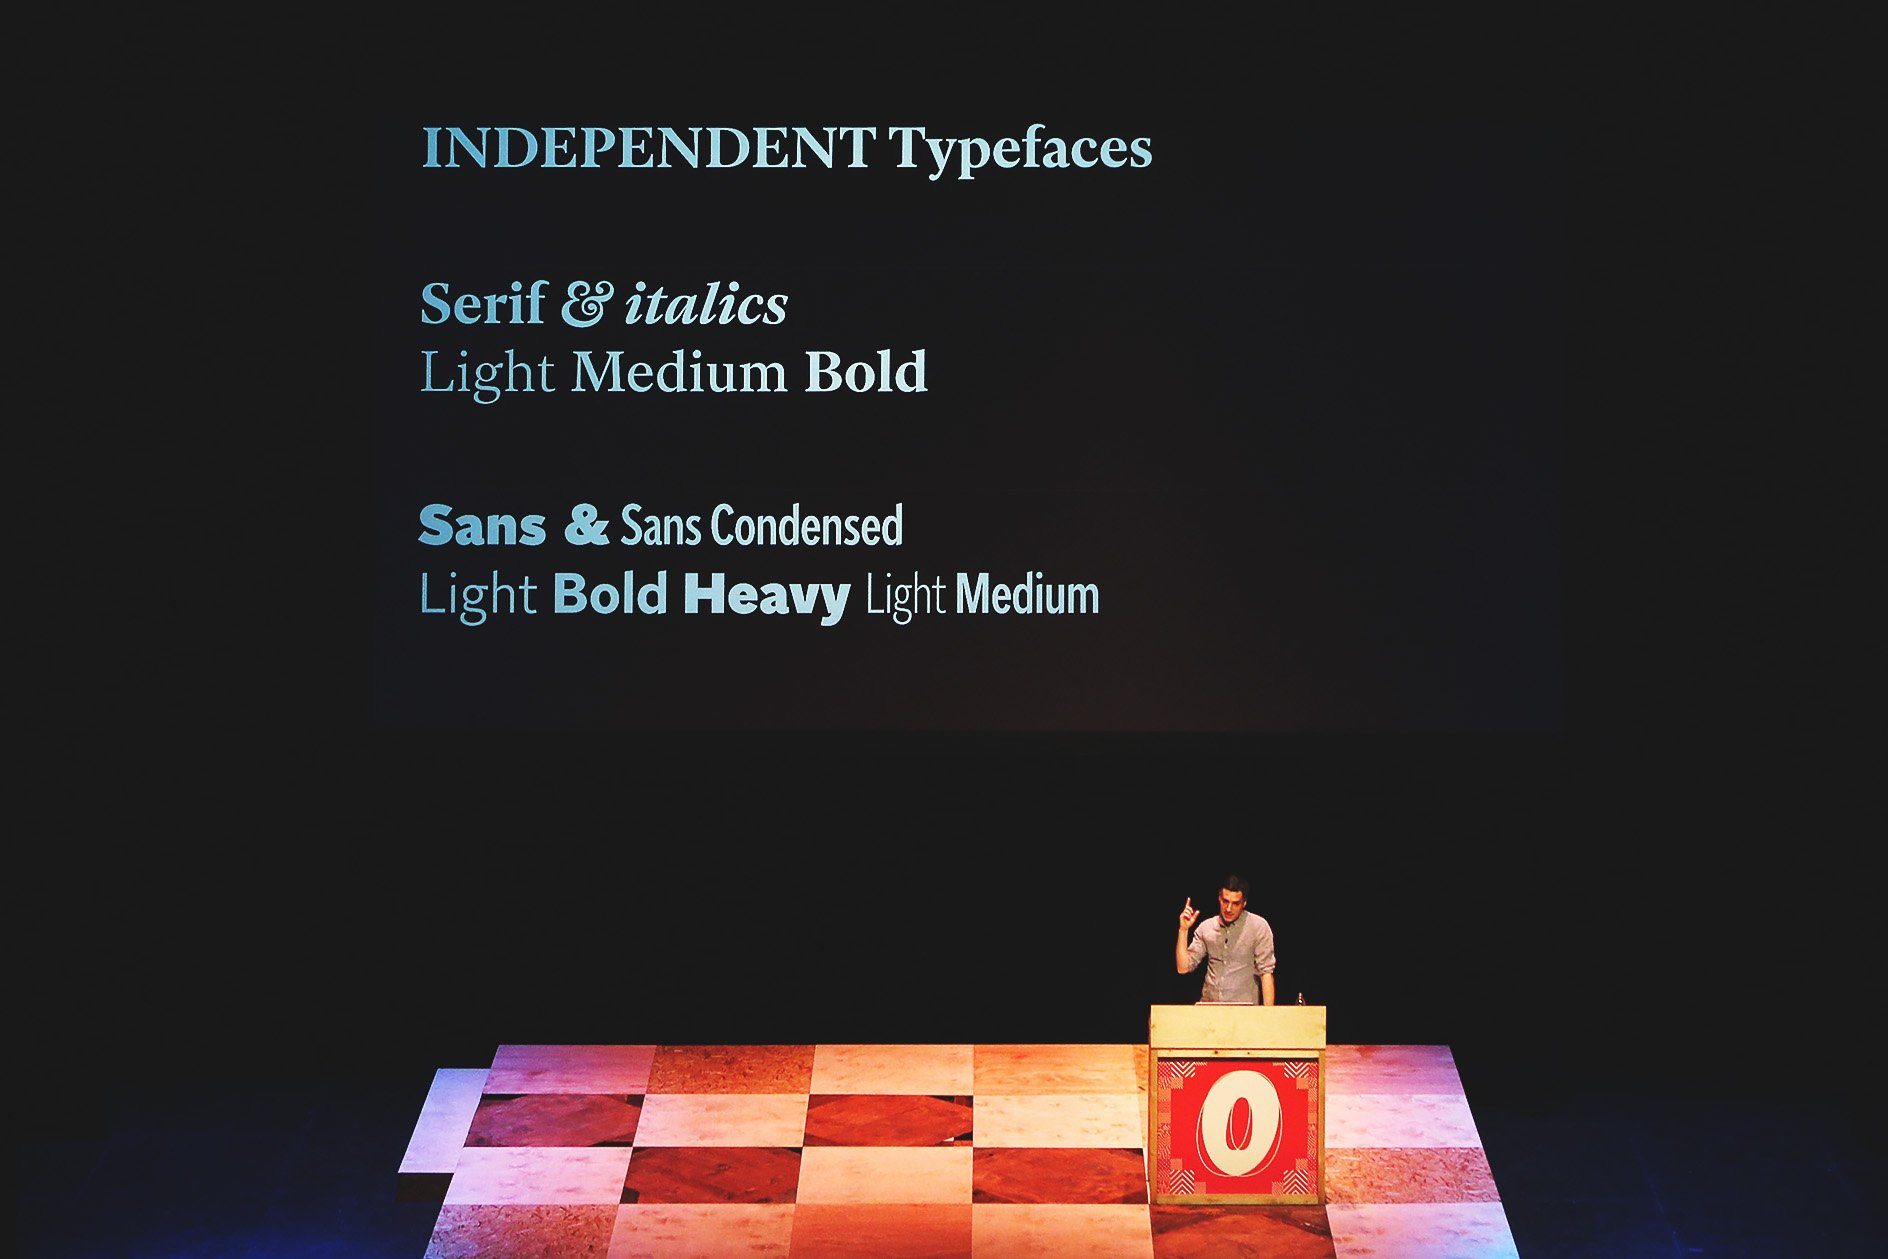 Matt Willey at OFFSET 2015 – Typefaces for the Independent